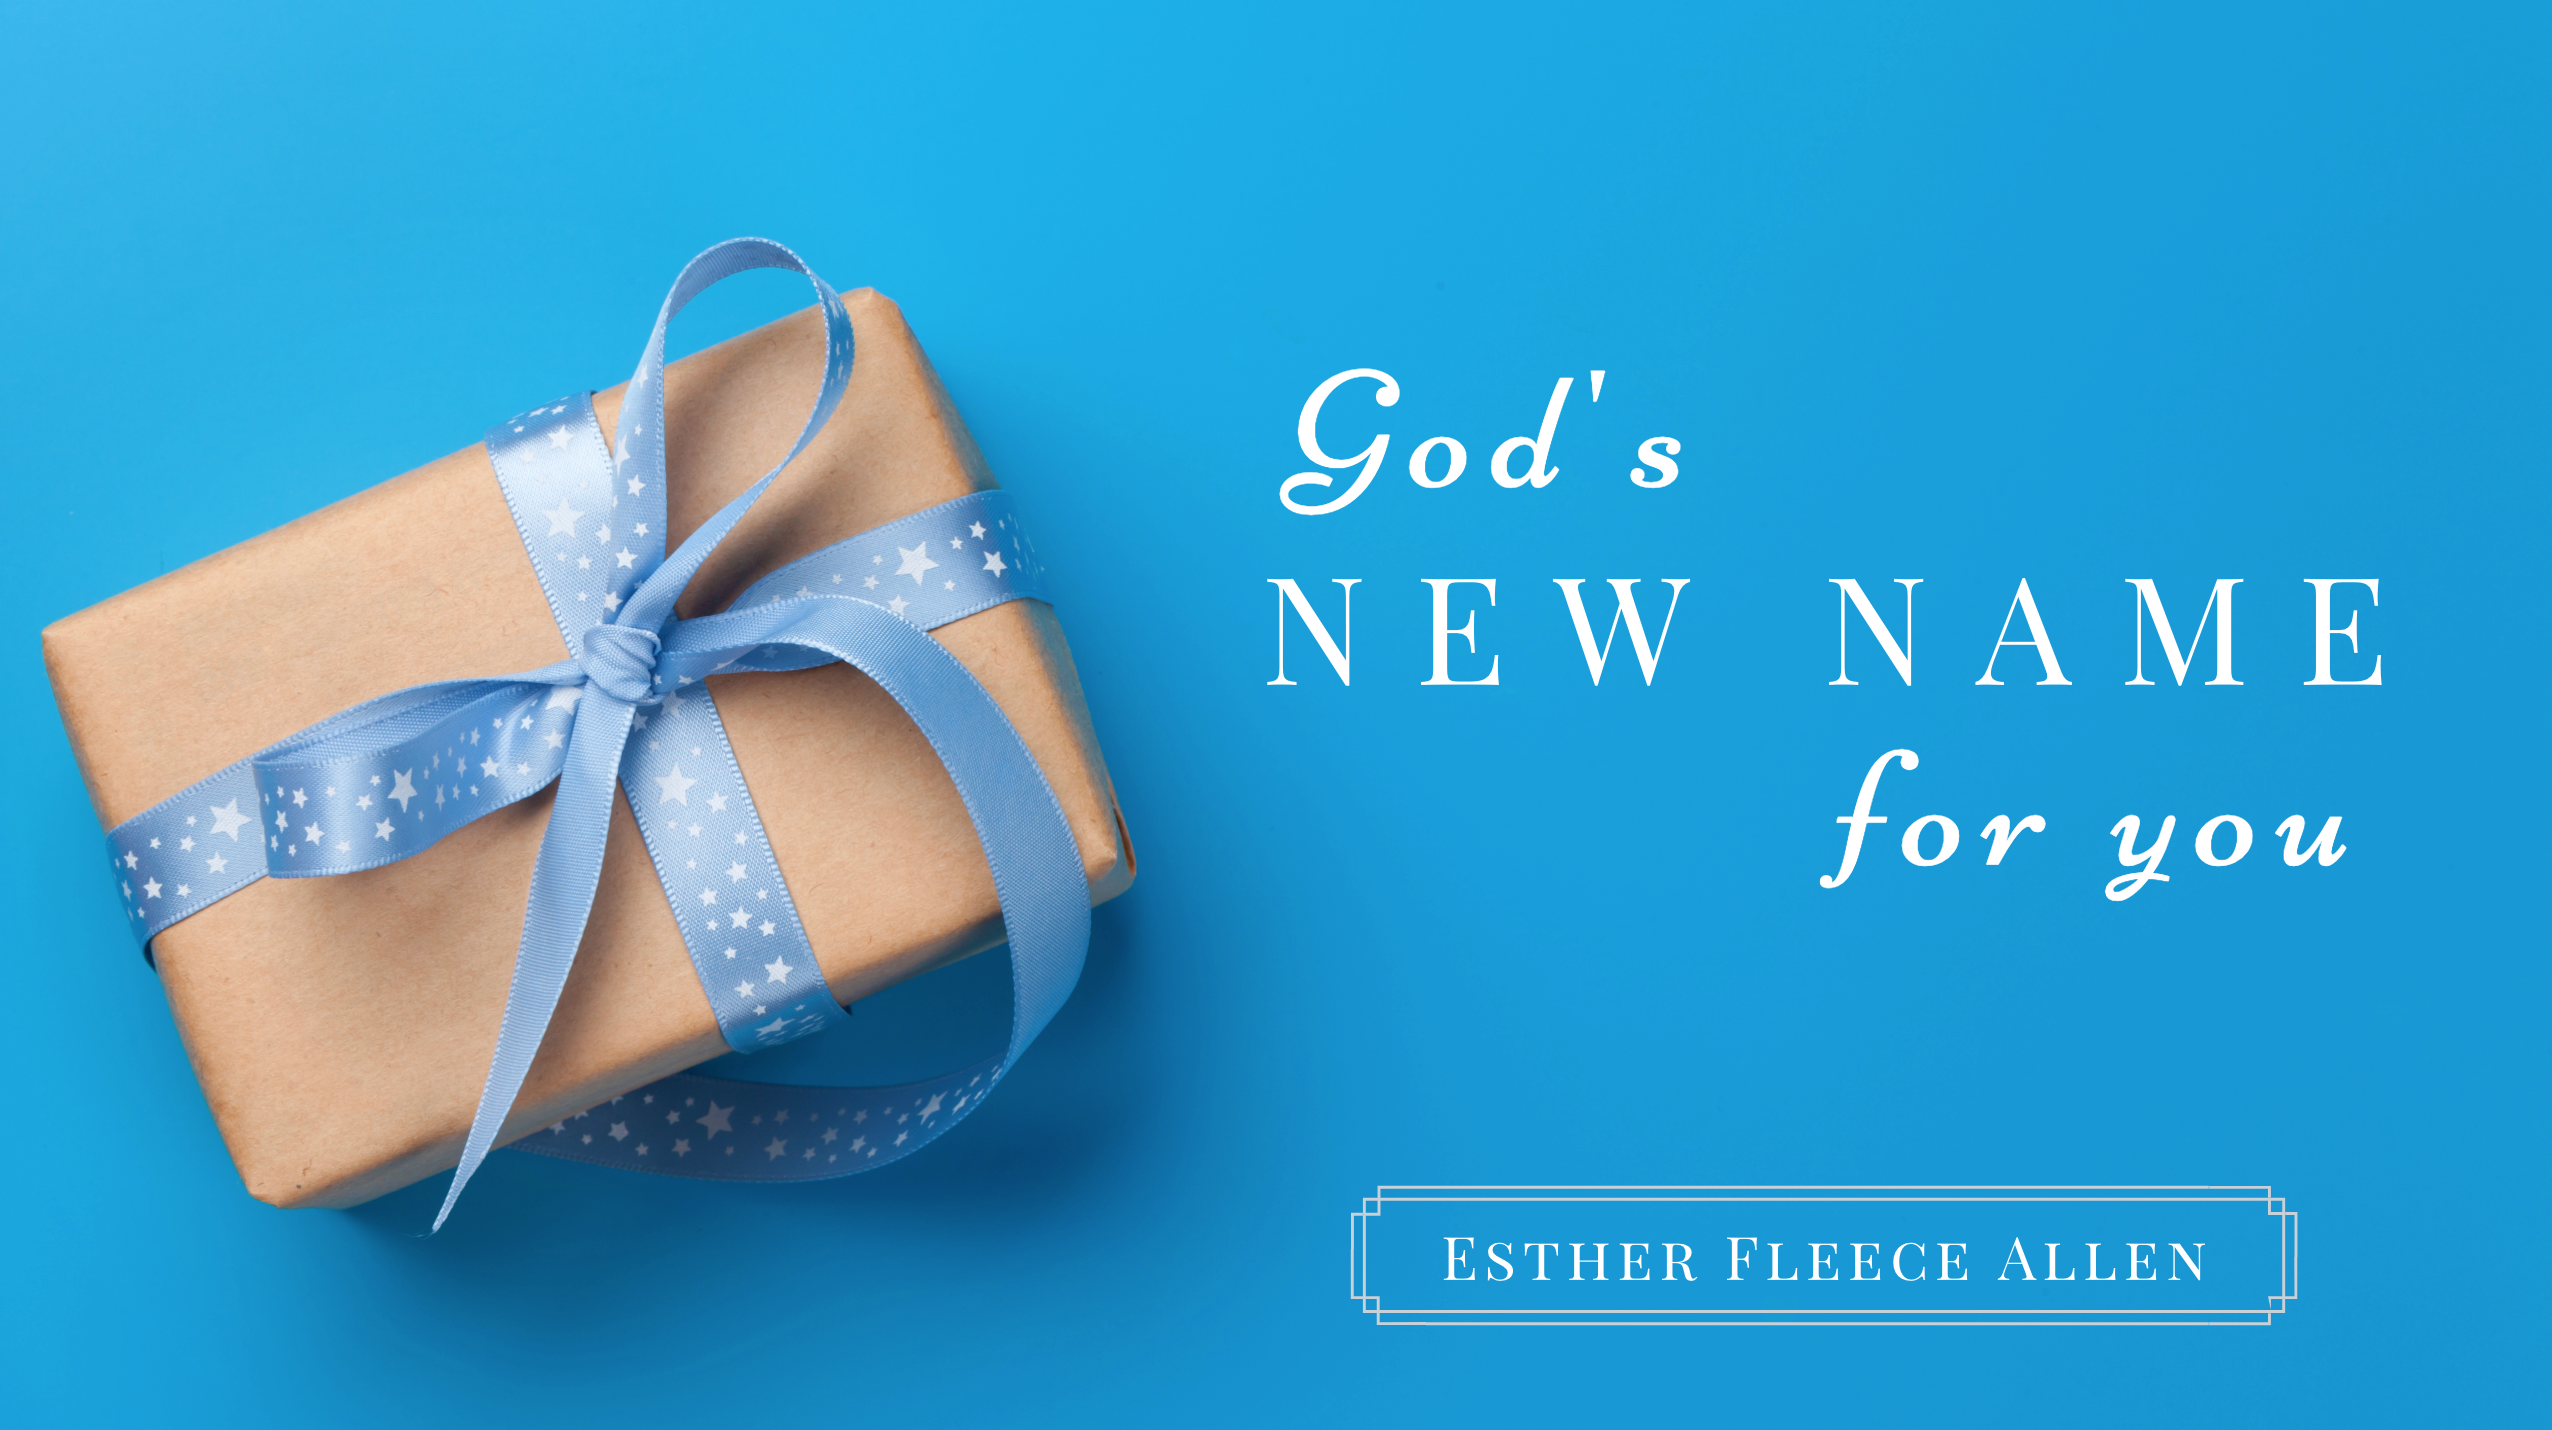 God's New Name for You blog by Esther Fleece Allen